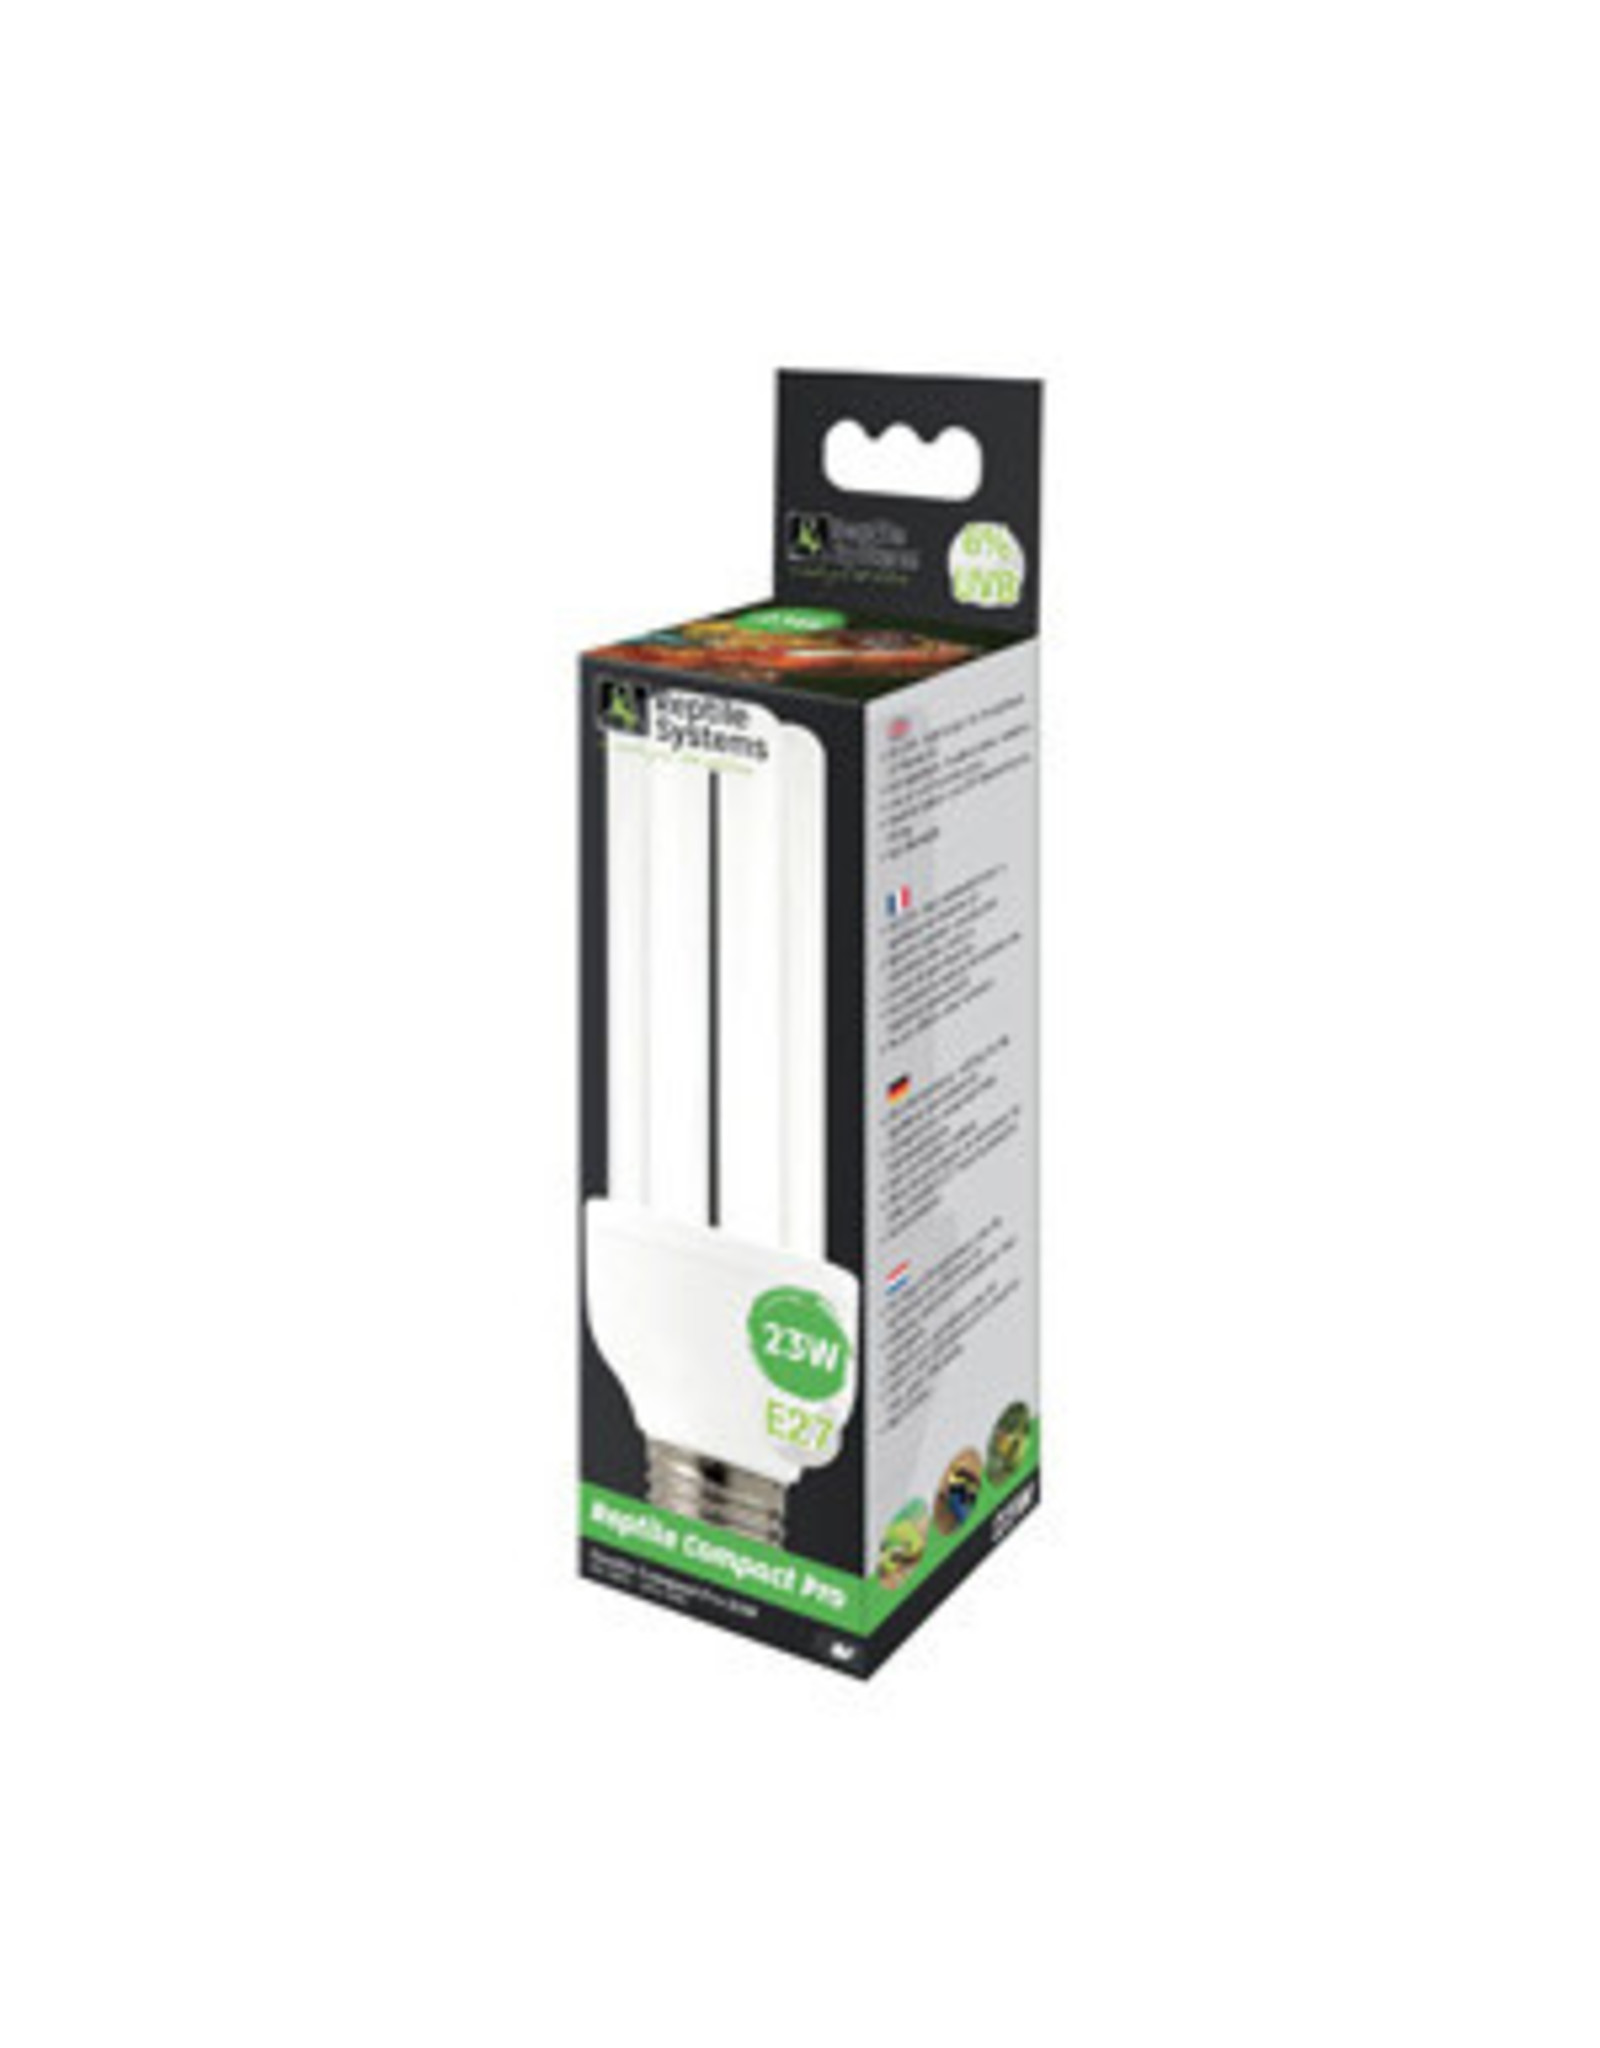 Reptile Systems RS Compact UVB Lamp Pro 6% 23w